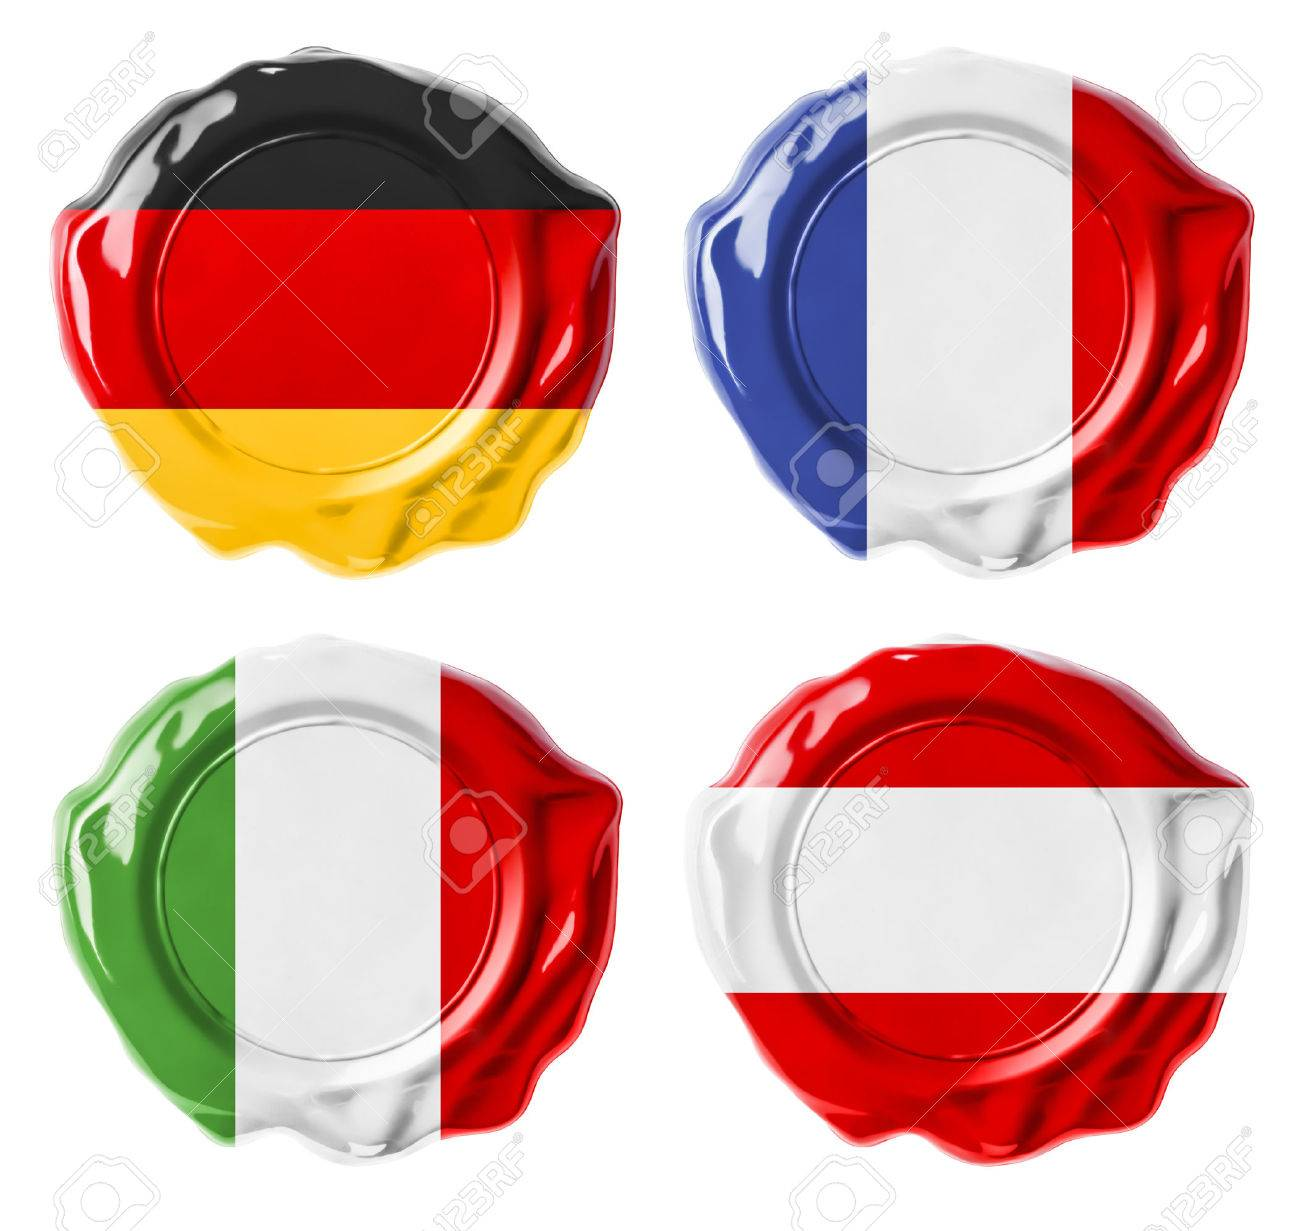 Germany, France, Italy, Austria national flag wax seals set isolated on white Stock Photo - 22217269